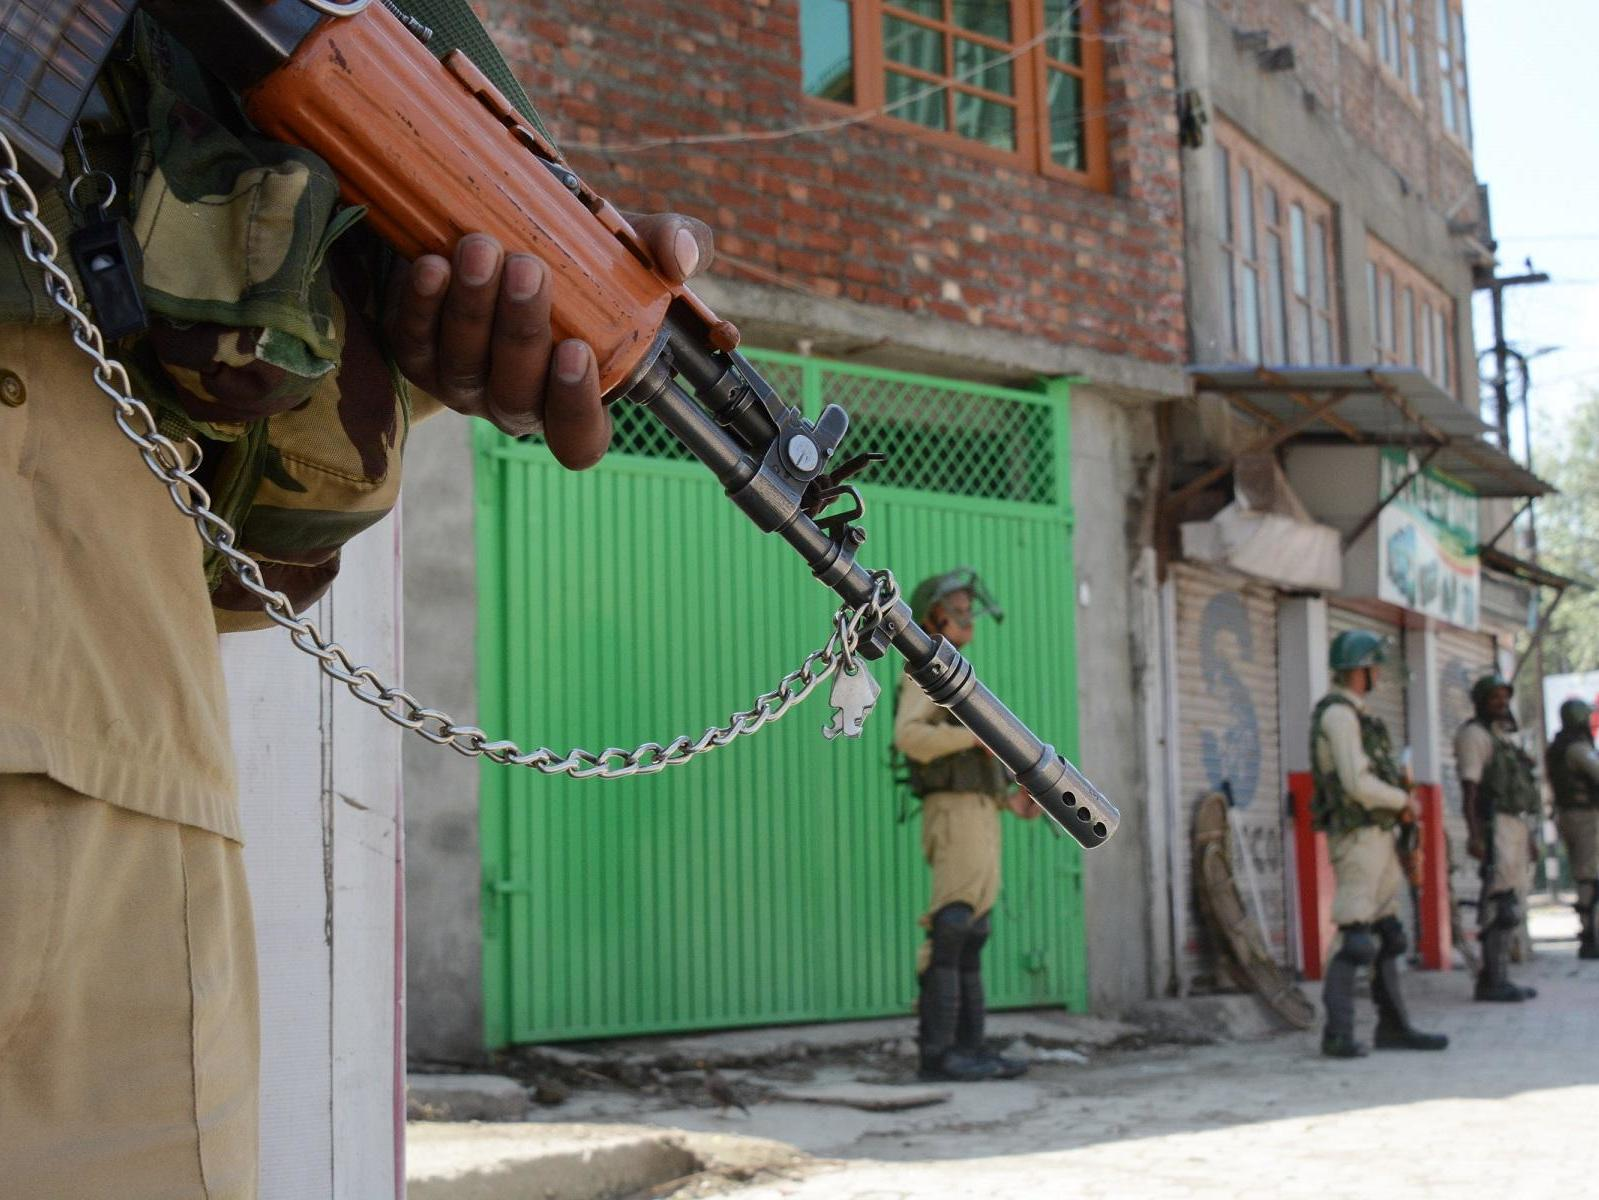 For a brief period before the Kashmir crisis, humanity in the subcontinent trumped propaganda – not anymore